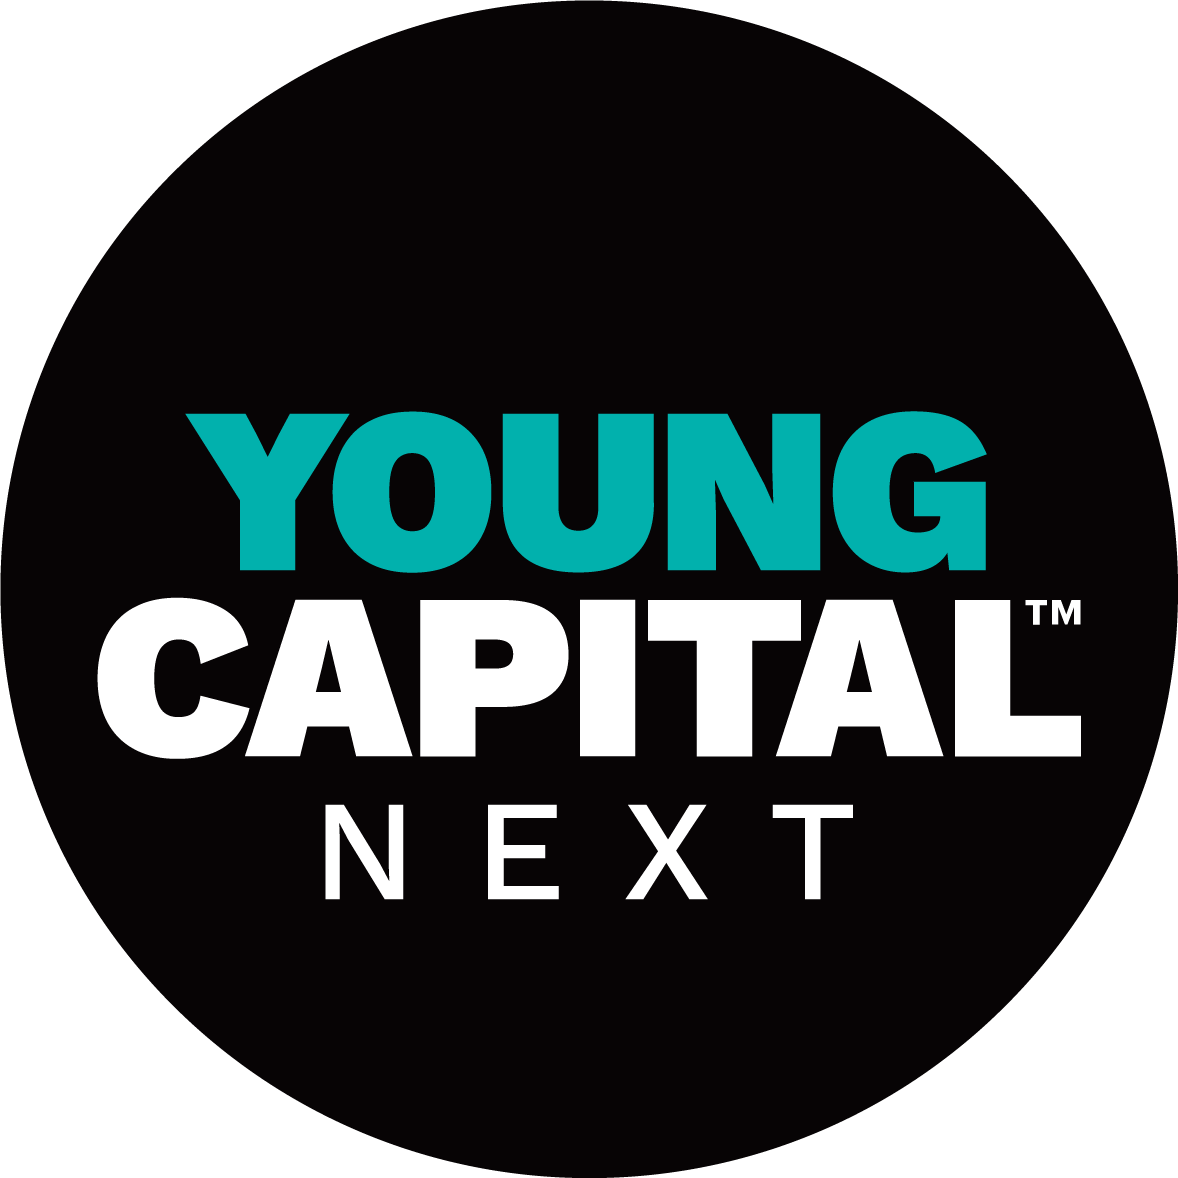 YoungCapital NEXT logo